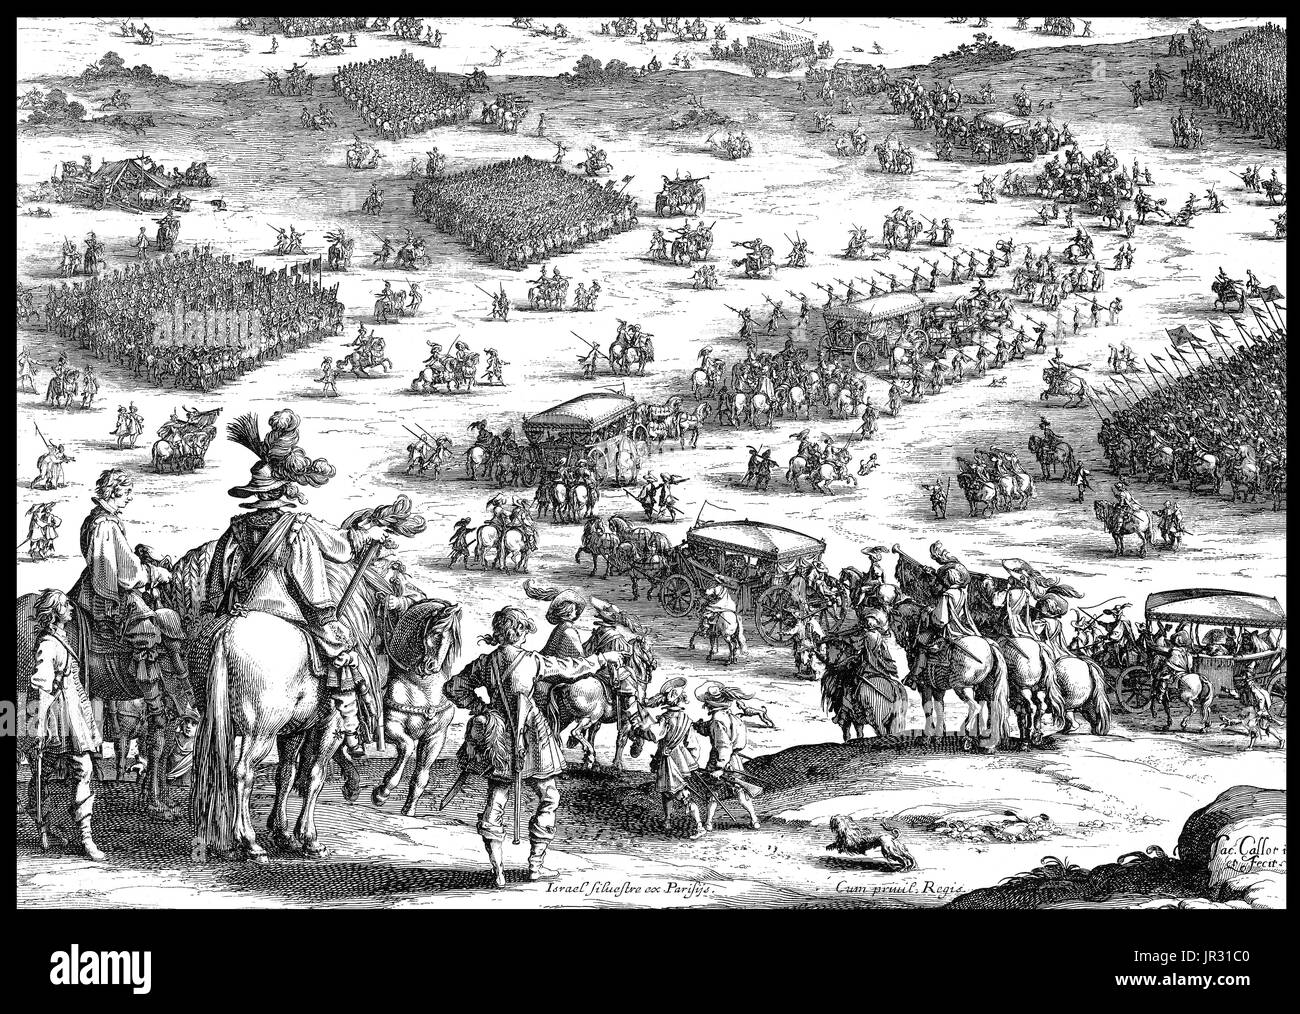 The Siege of Breda of 1624-25 occurred during the Eighty Years' War. Following the orders of Ambrogio Spinola, Philip IV's army laid siege to Breda in August 1624. The strategically located city was heavily fortified and strongly defended by a garrison of 7,000 men, that the Dutch were confident would hold out long enough to wear down besiegers. Spinola launched his Breda campaign, rapidly blocking the city's defenses and driving off a Dutch relief army that had attempted to cut off the Spanish army's access to supplies. In February 1625, a second relief force, consisting of 7,000 English troo - Stock Image